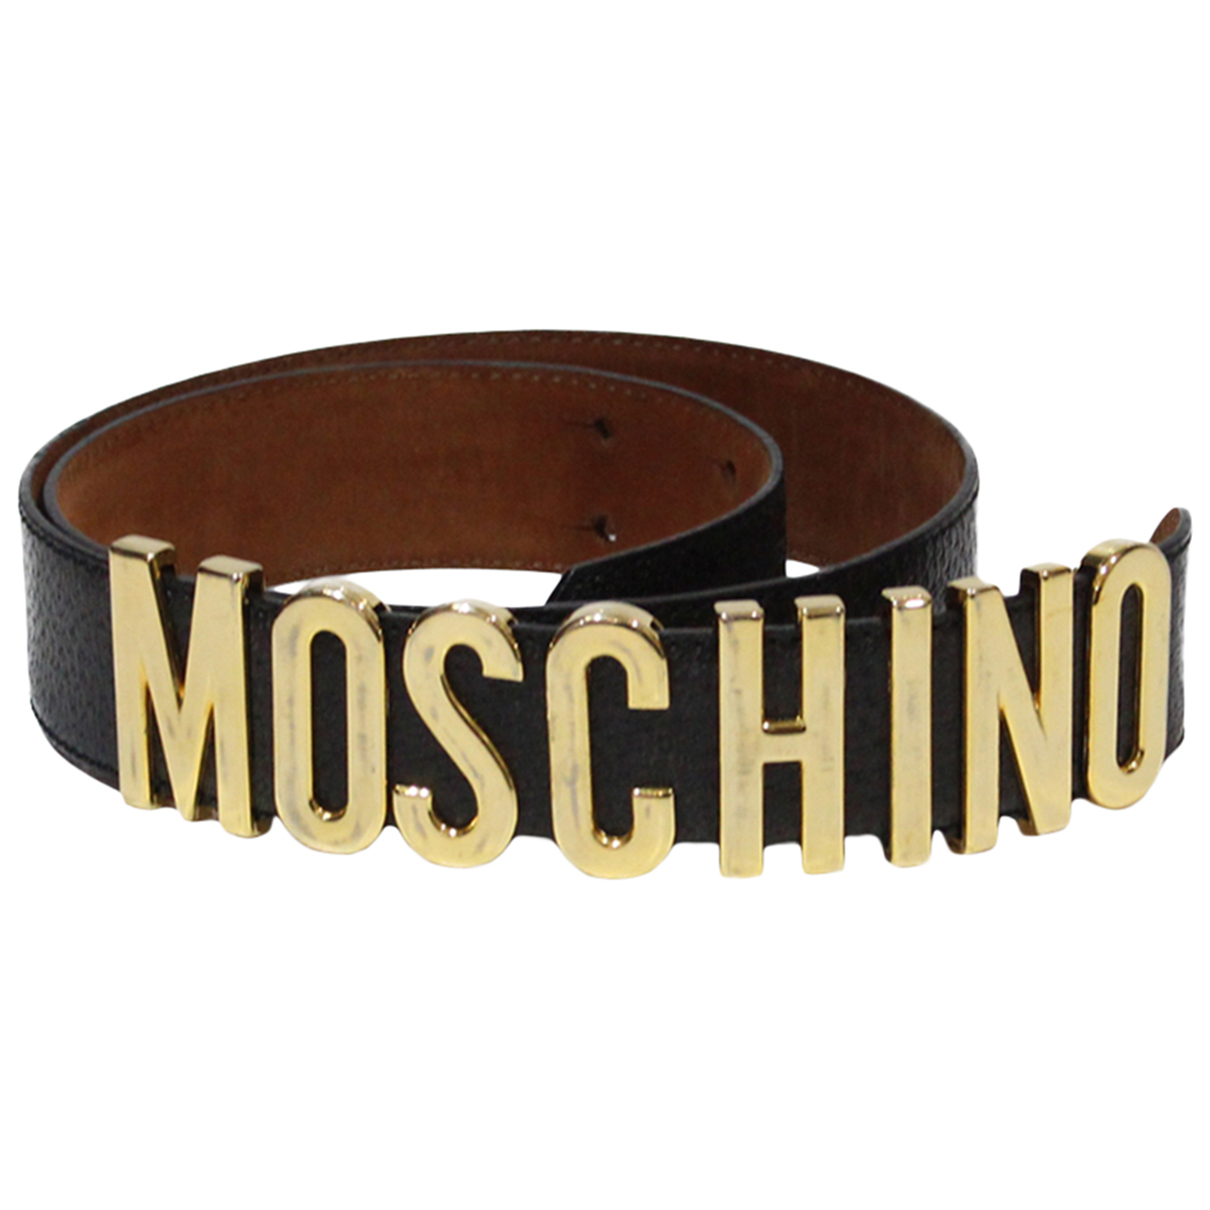 Moschino N Brown Leather belt for Women 90 cm